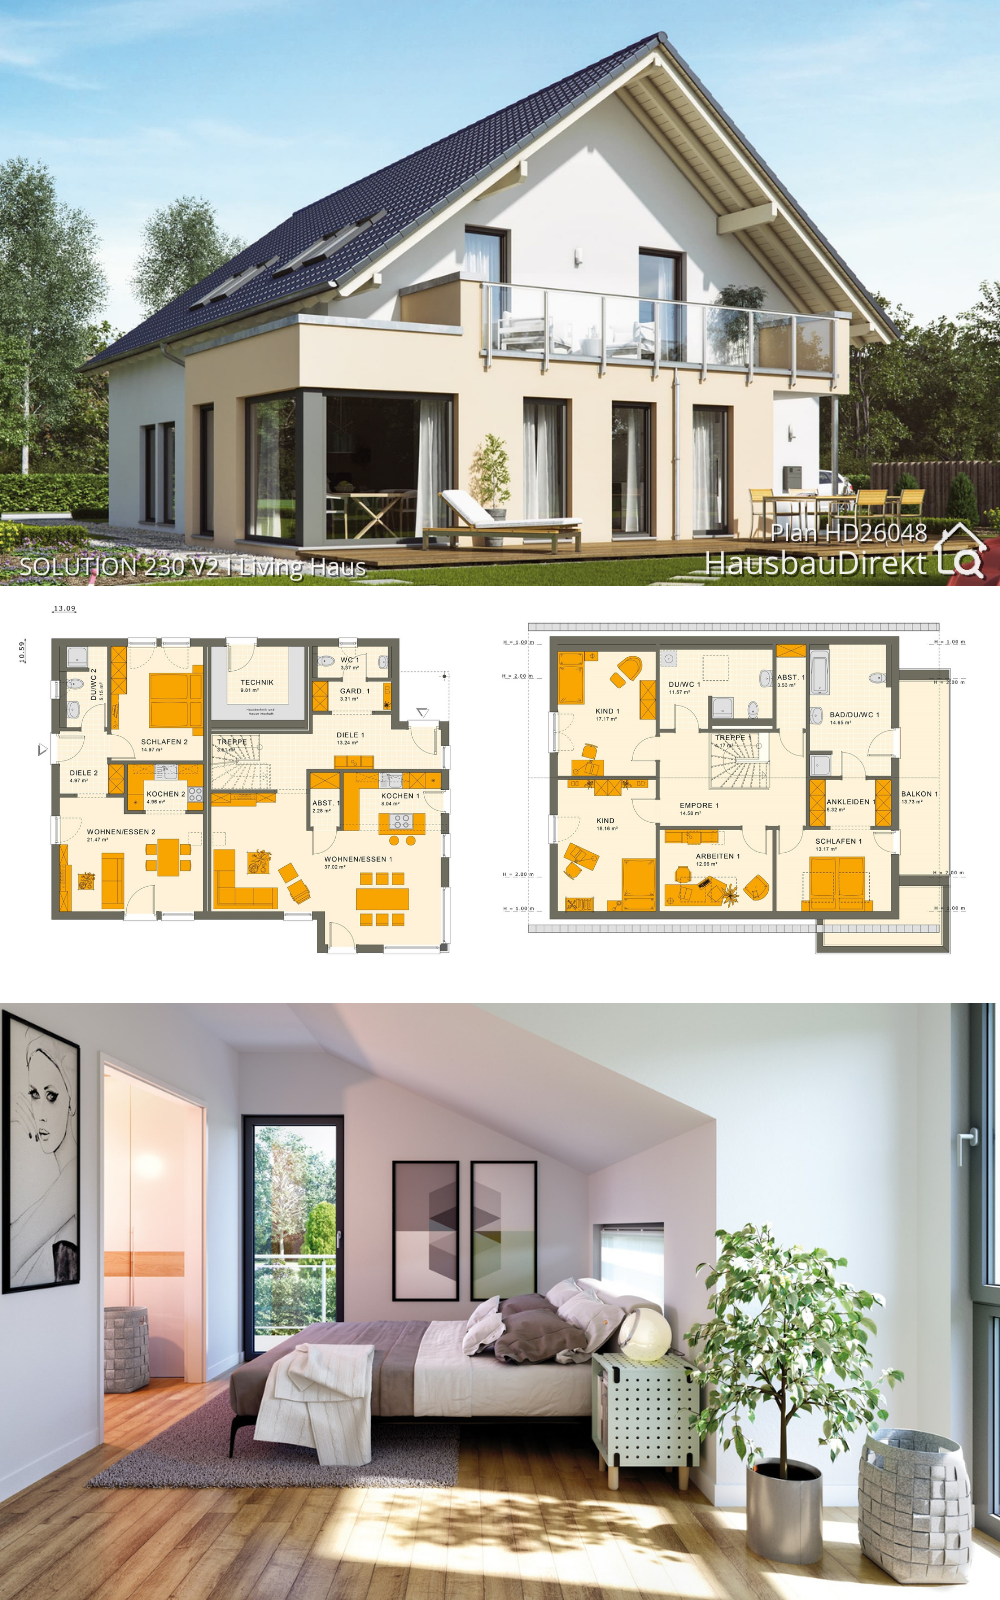 Two Family House Plans Modern with Granny Flat & 5 Bedroom Contemporary European Design Ideas